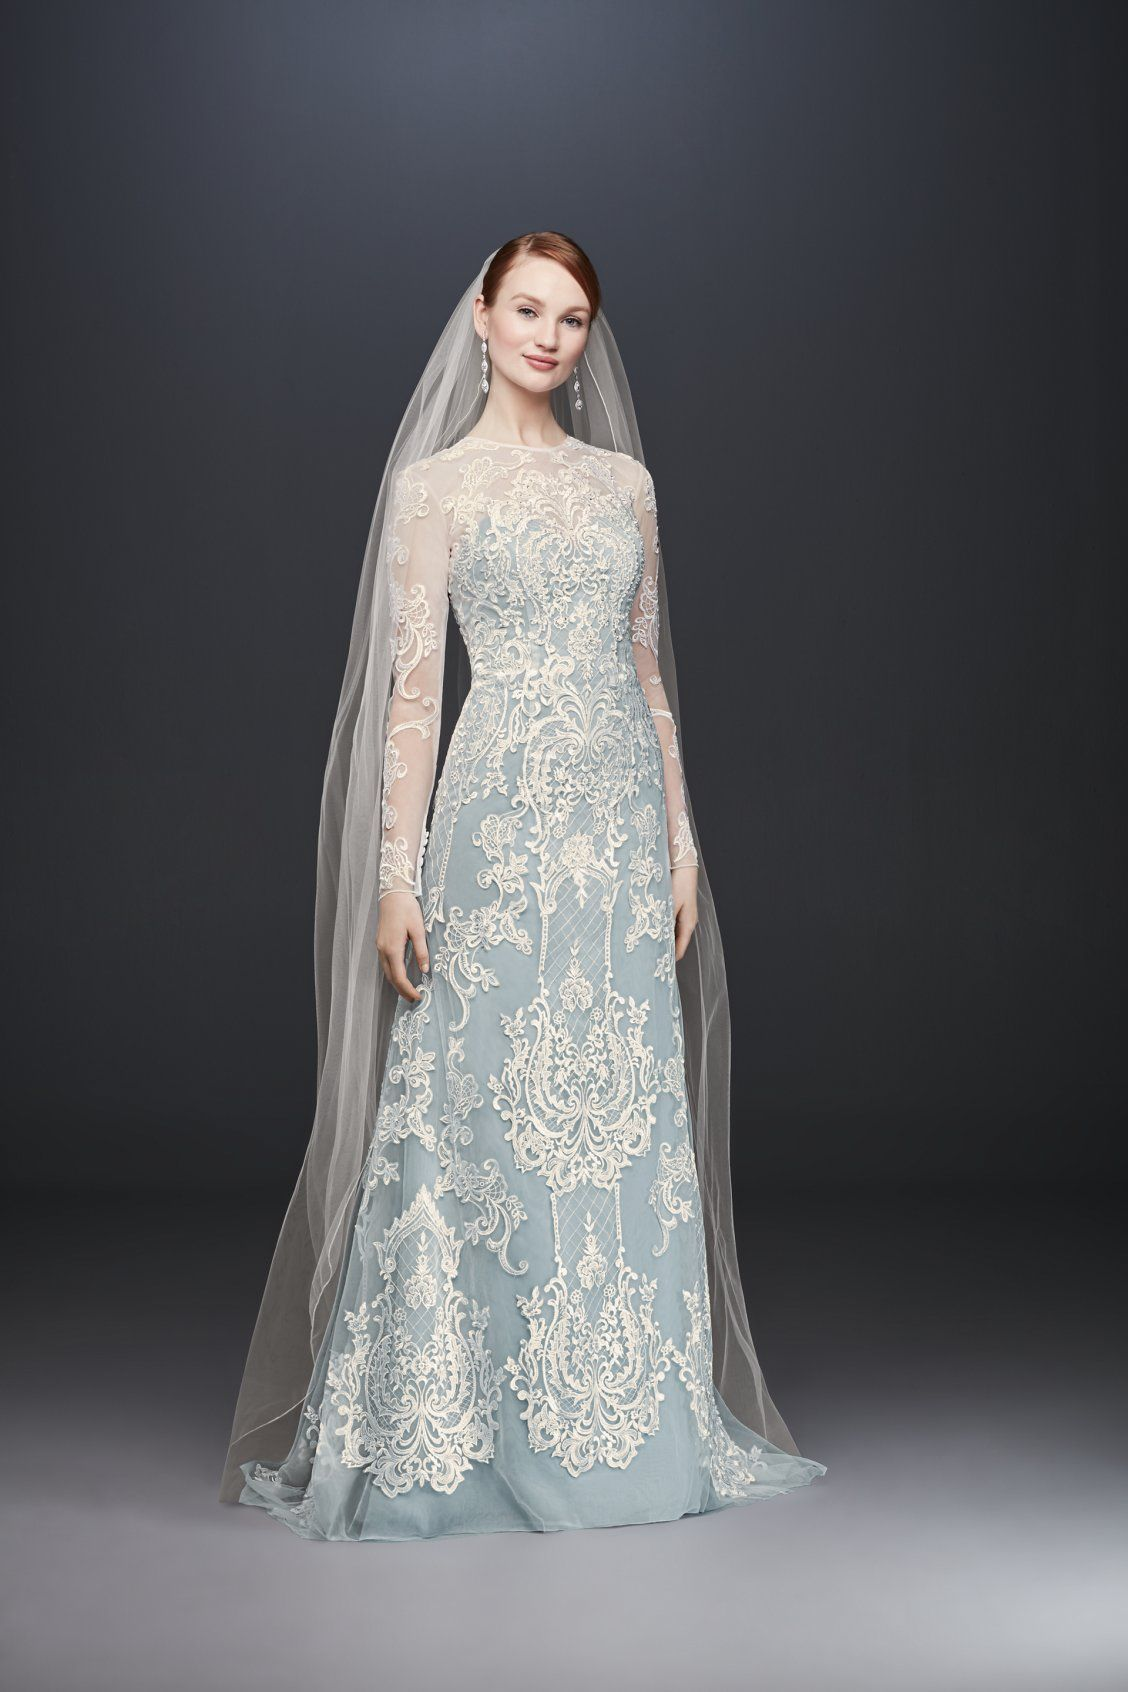 b24af3367e0 Something blue wedding dress with cloud blue column sheath and long sleeve  lace overlay by Oleg Cassini available at David s Bridal